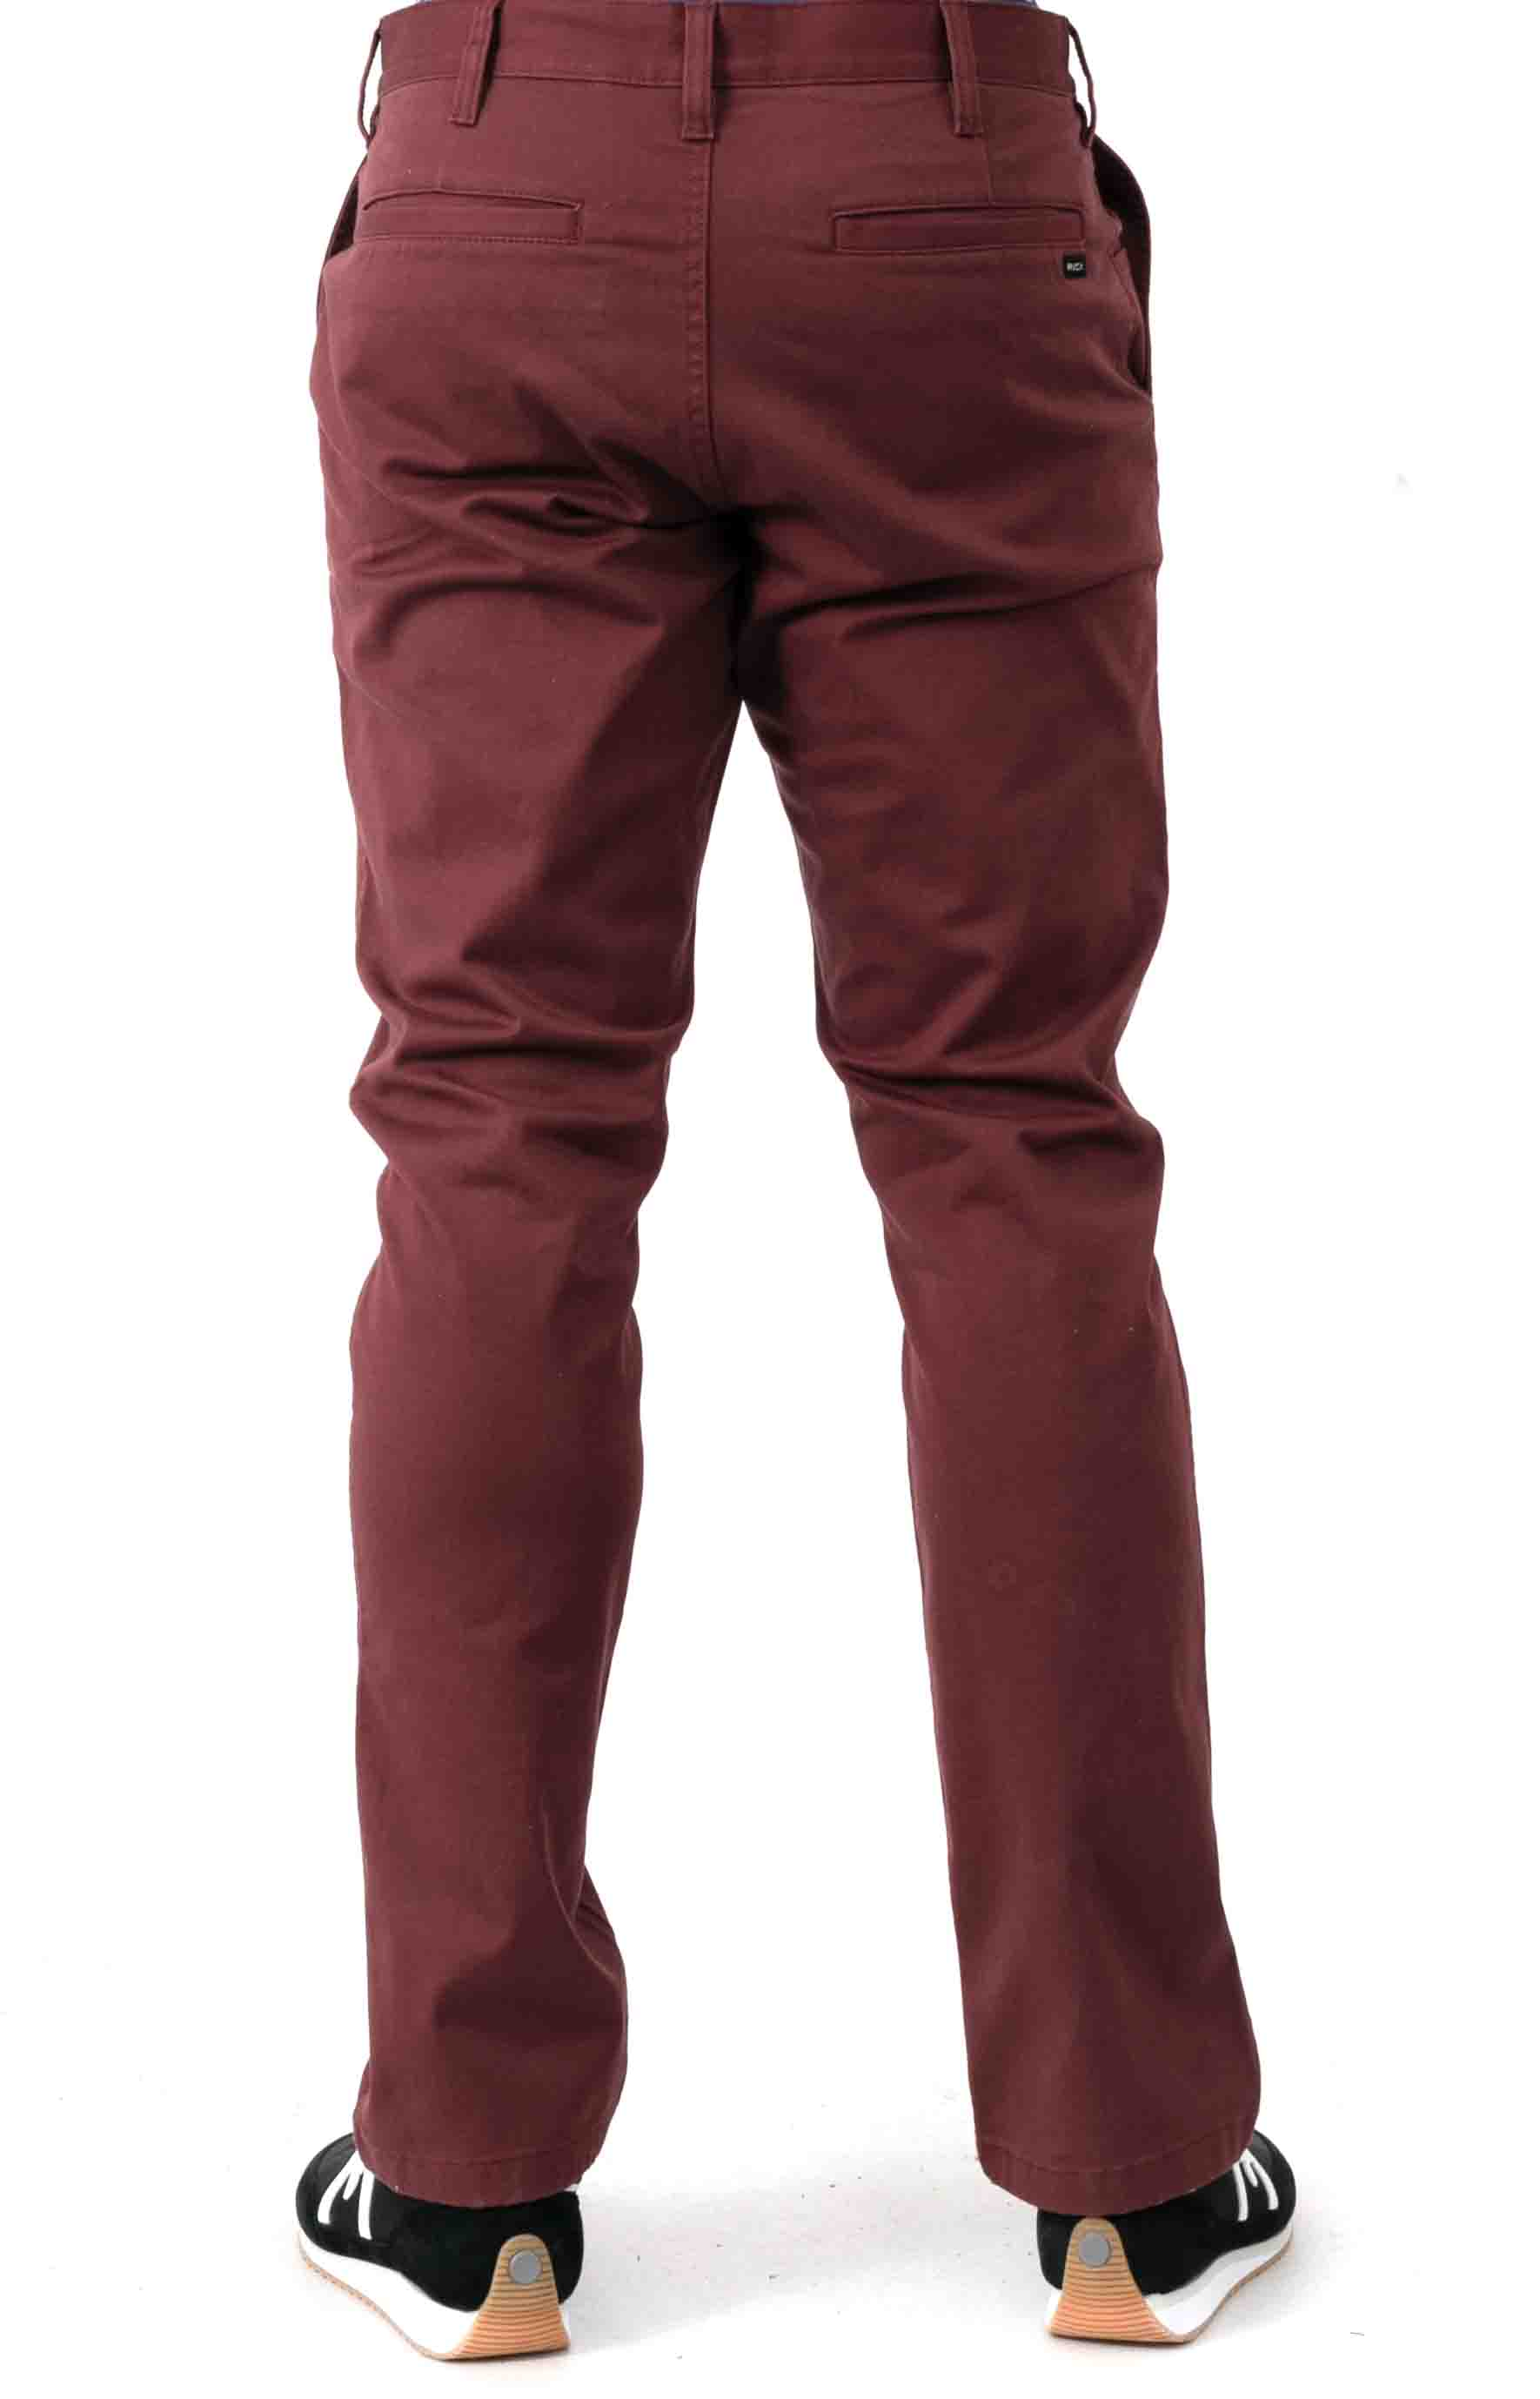 Week-End Stretch Straight Fit Pants - Oxblood Red 3